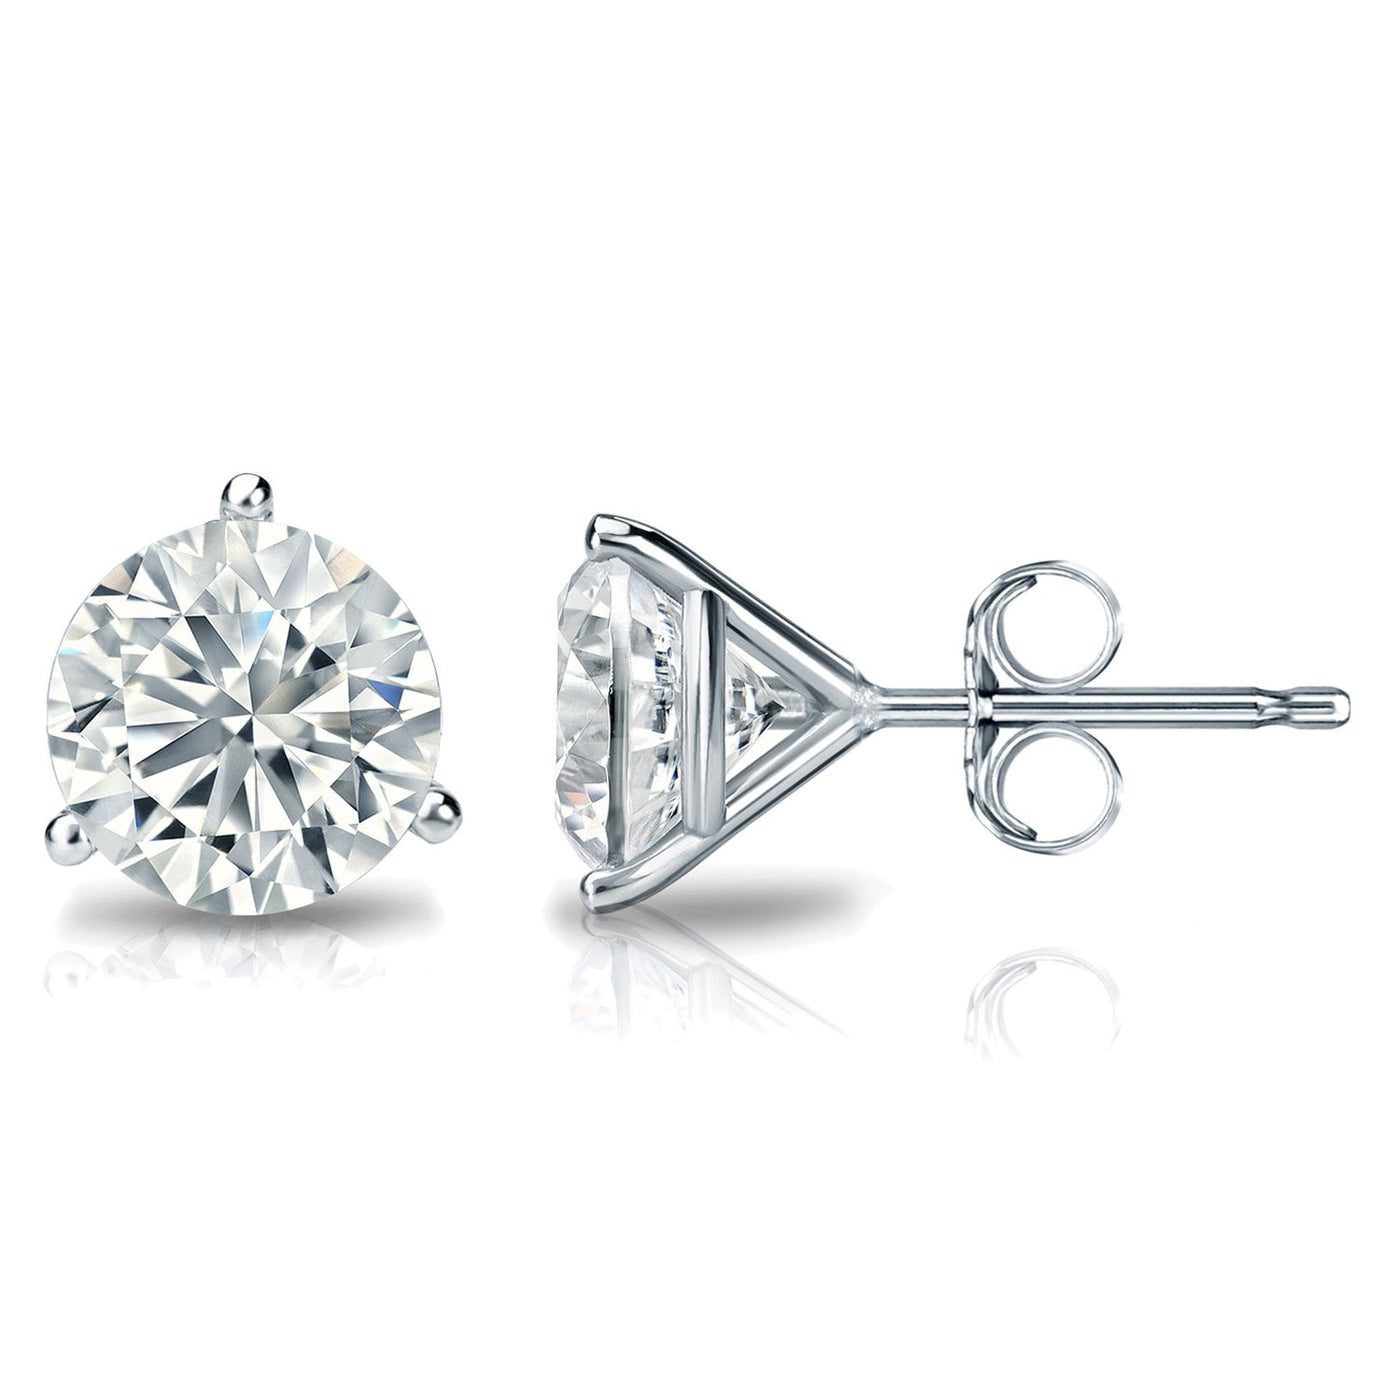 1/2 Carat Round 14k White Gold 3 Prong Martini Set Diamond Solitaire Stud Earrings (Signature Quality)